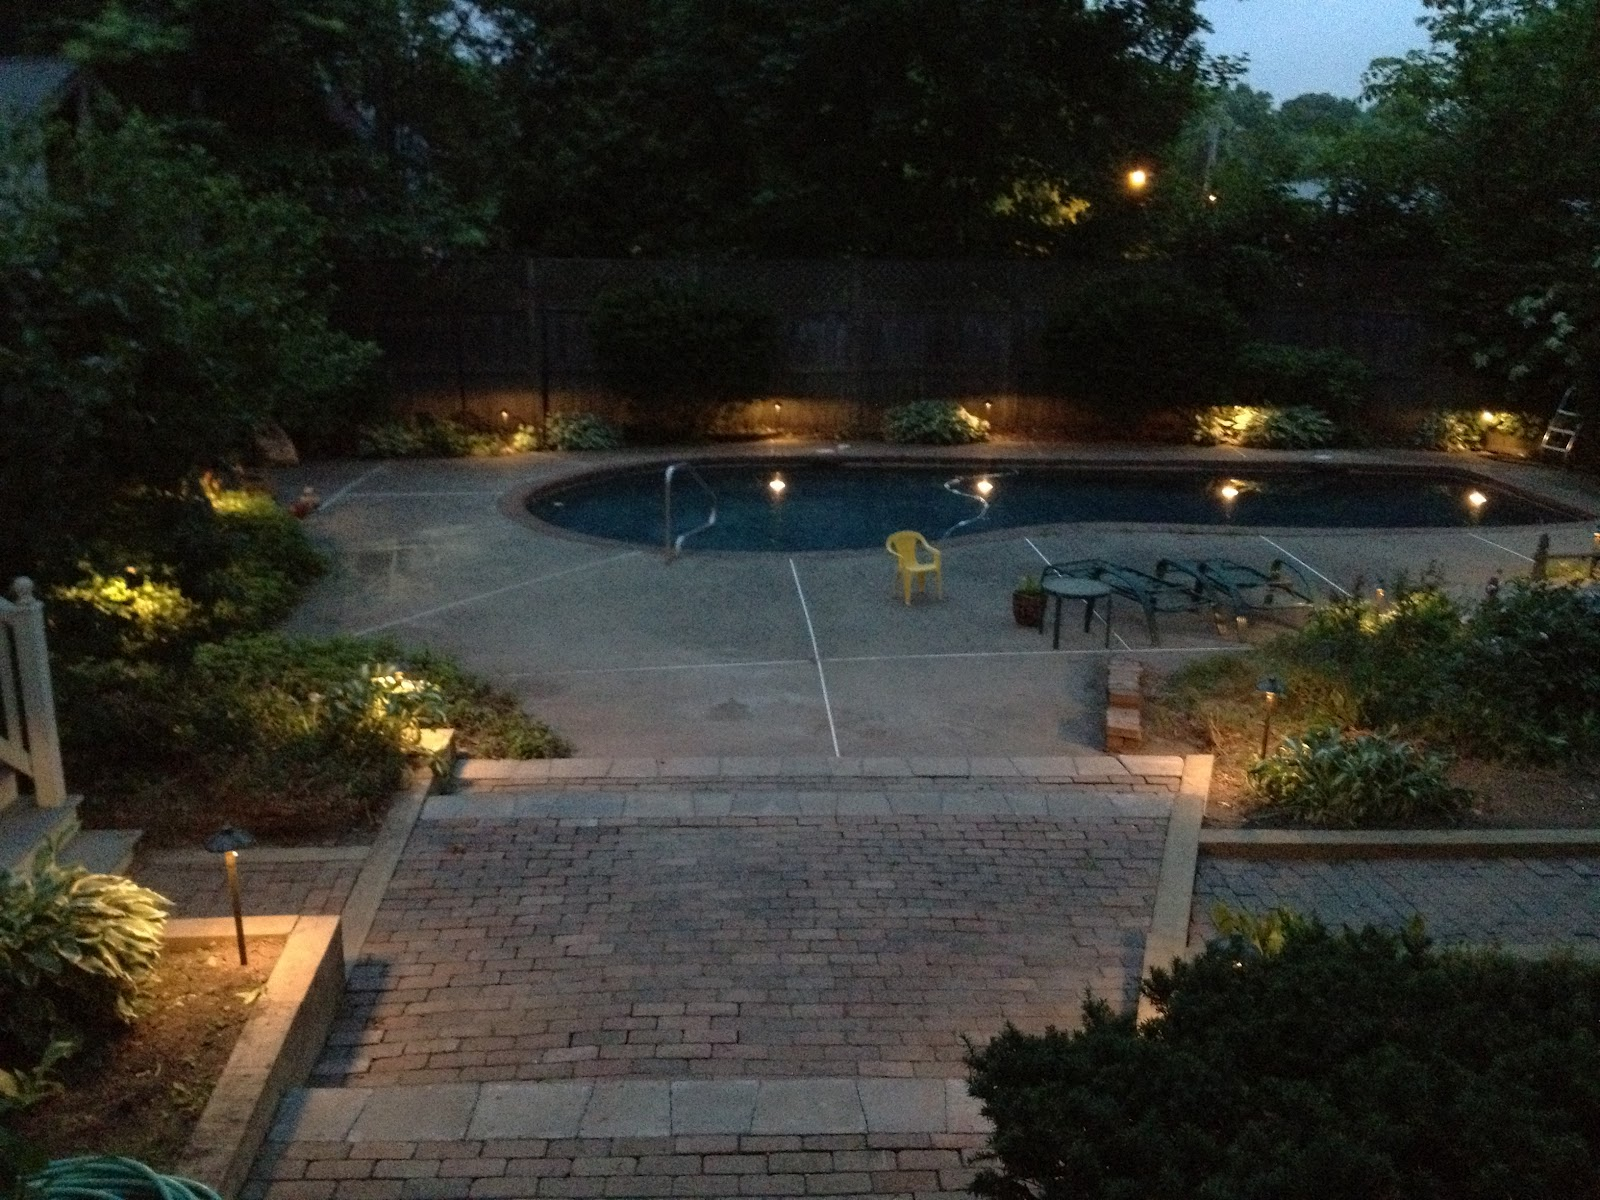 Garden Landscaping Wakefield : Jeff s landscaping wakefield ma melrose reading landscape lighting